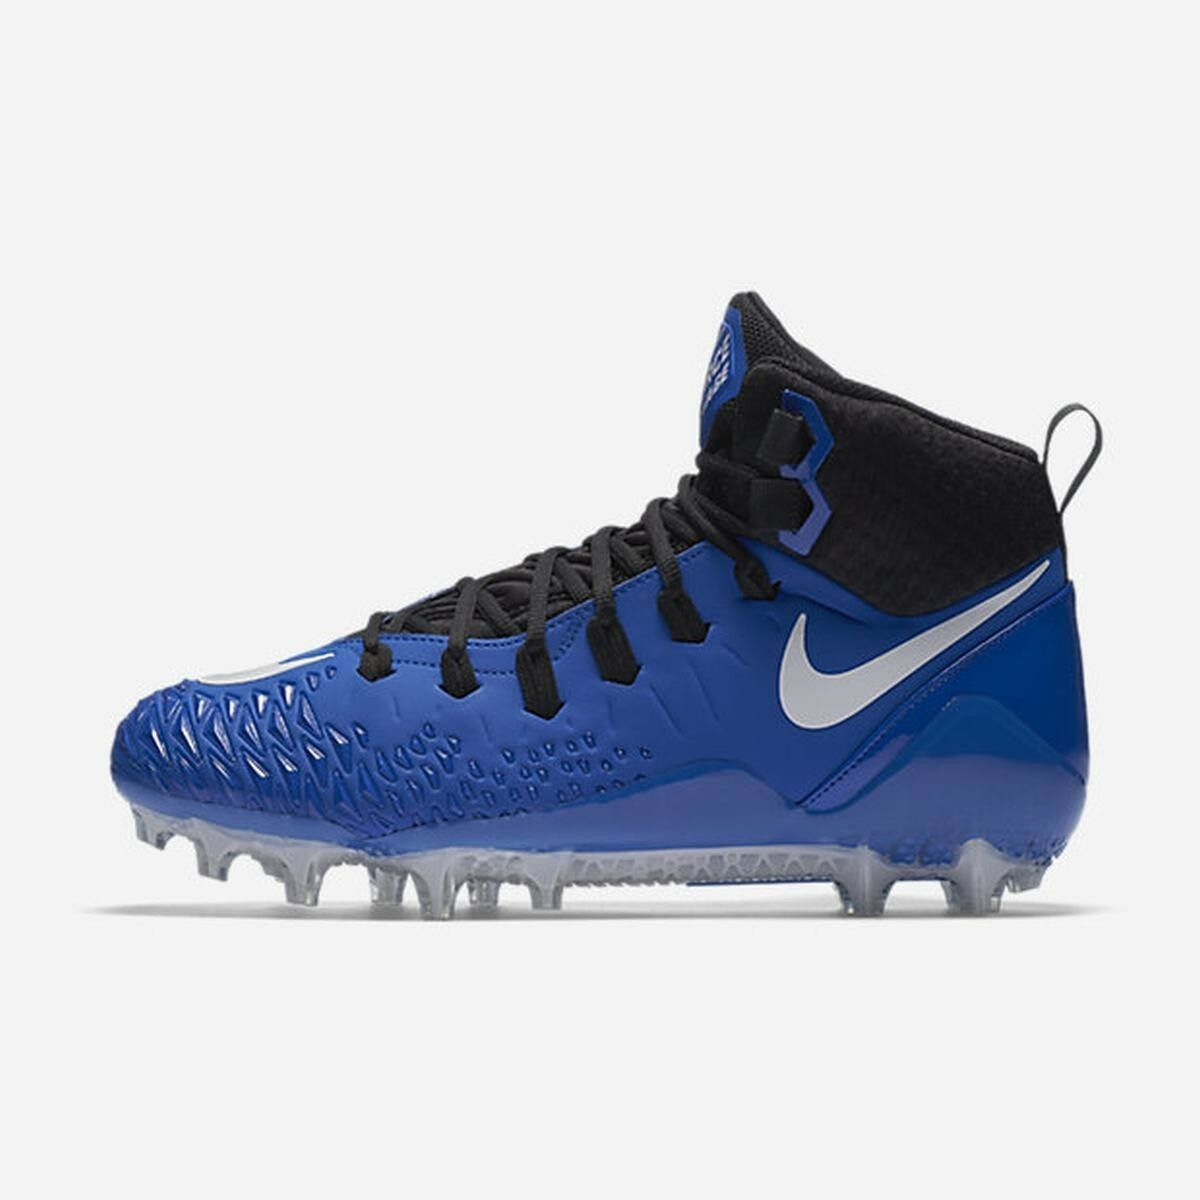 new mens 12/13 Nike force savage pro TD Football Cleats royal/black 880144-410 Special limited time